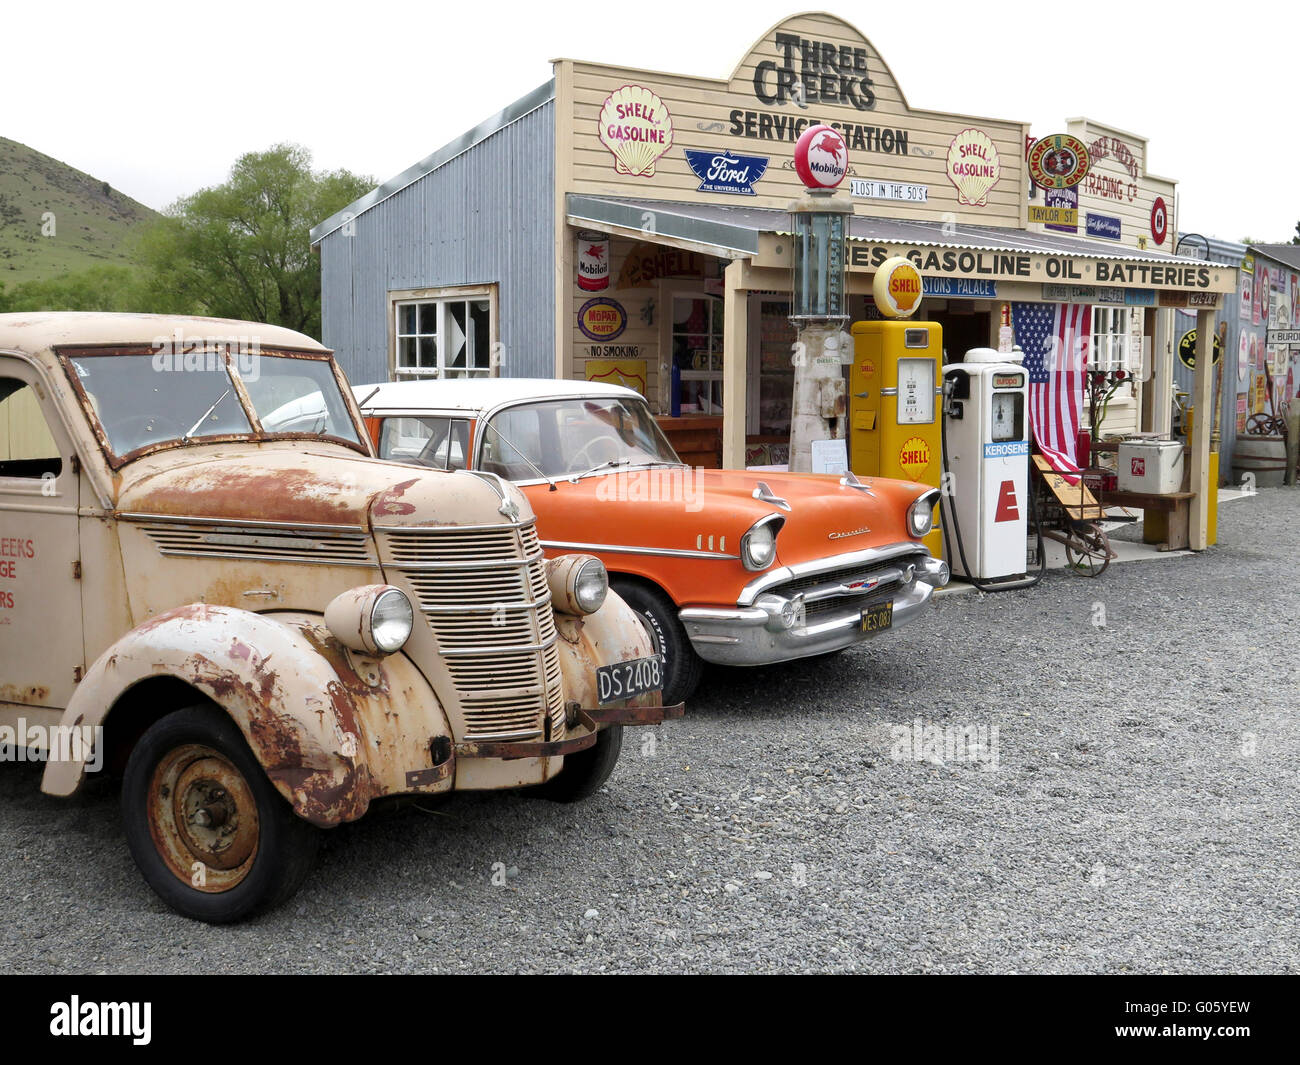 Chevrolet at three creeks service station south island new zealand